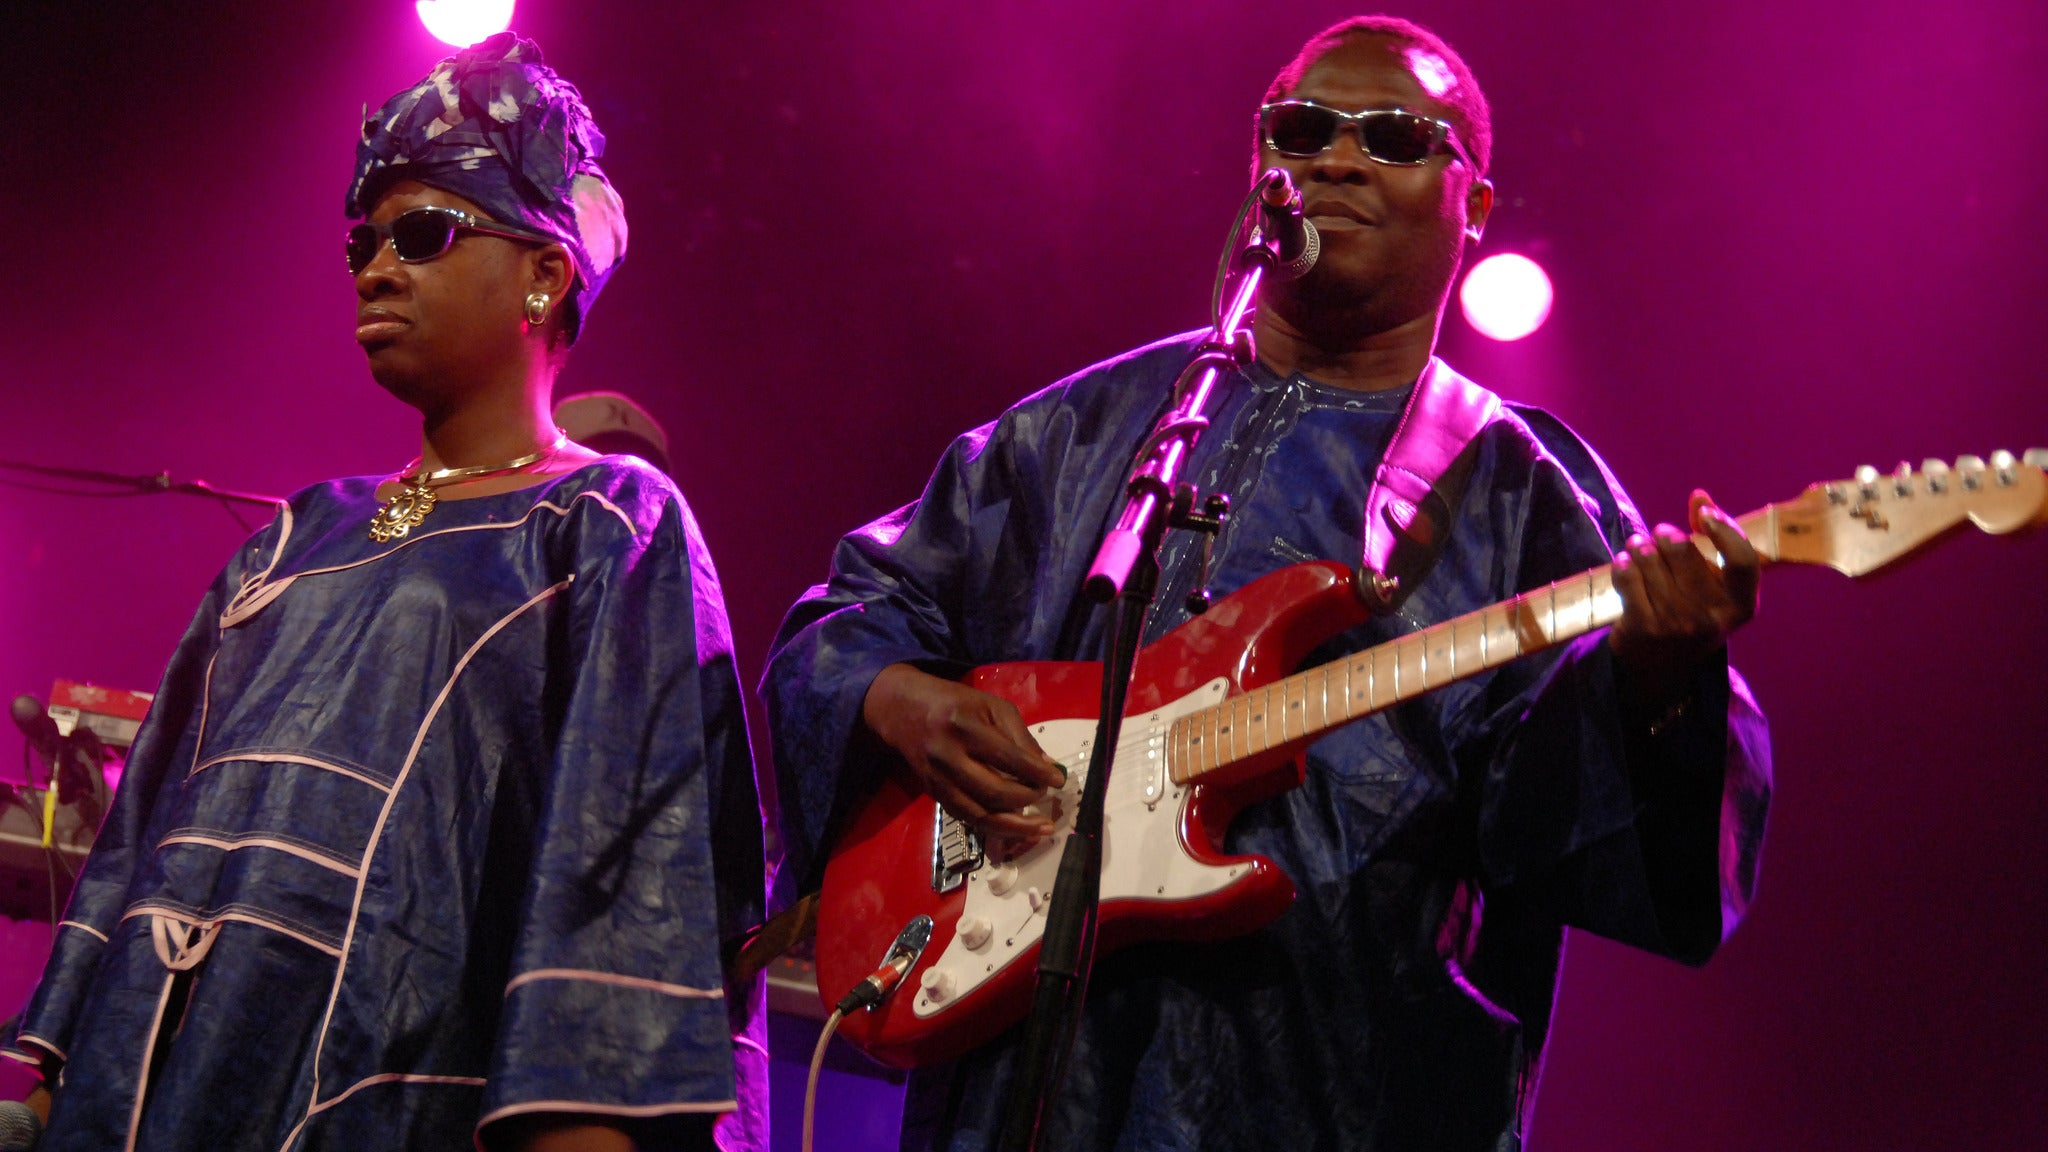 Amadou & Mariam - In The Flex Stage! at Birchmere